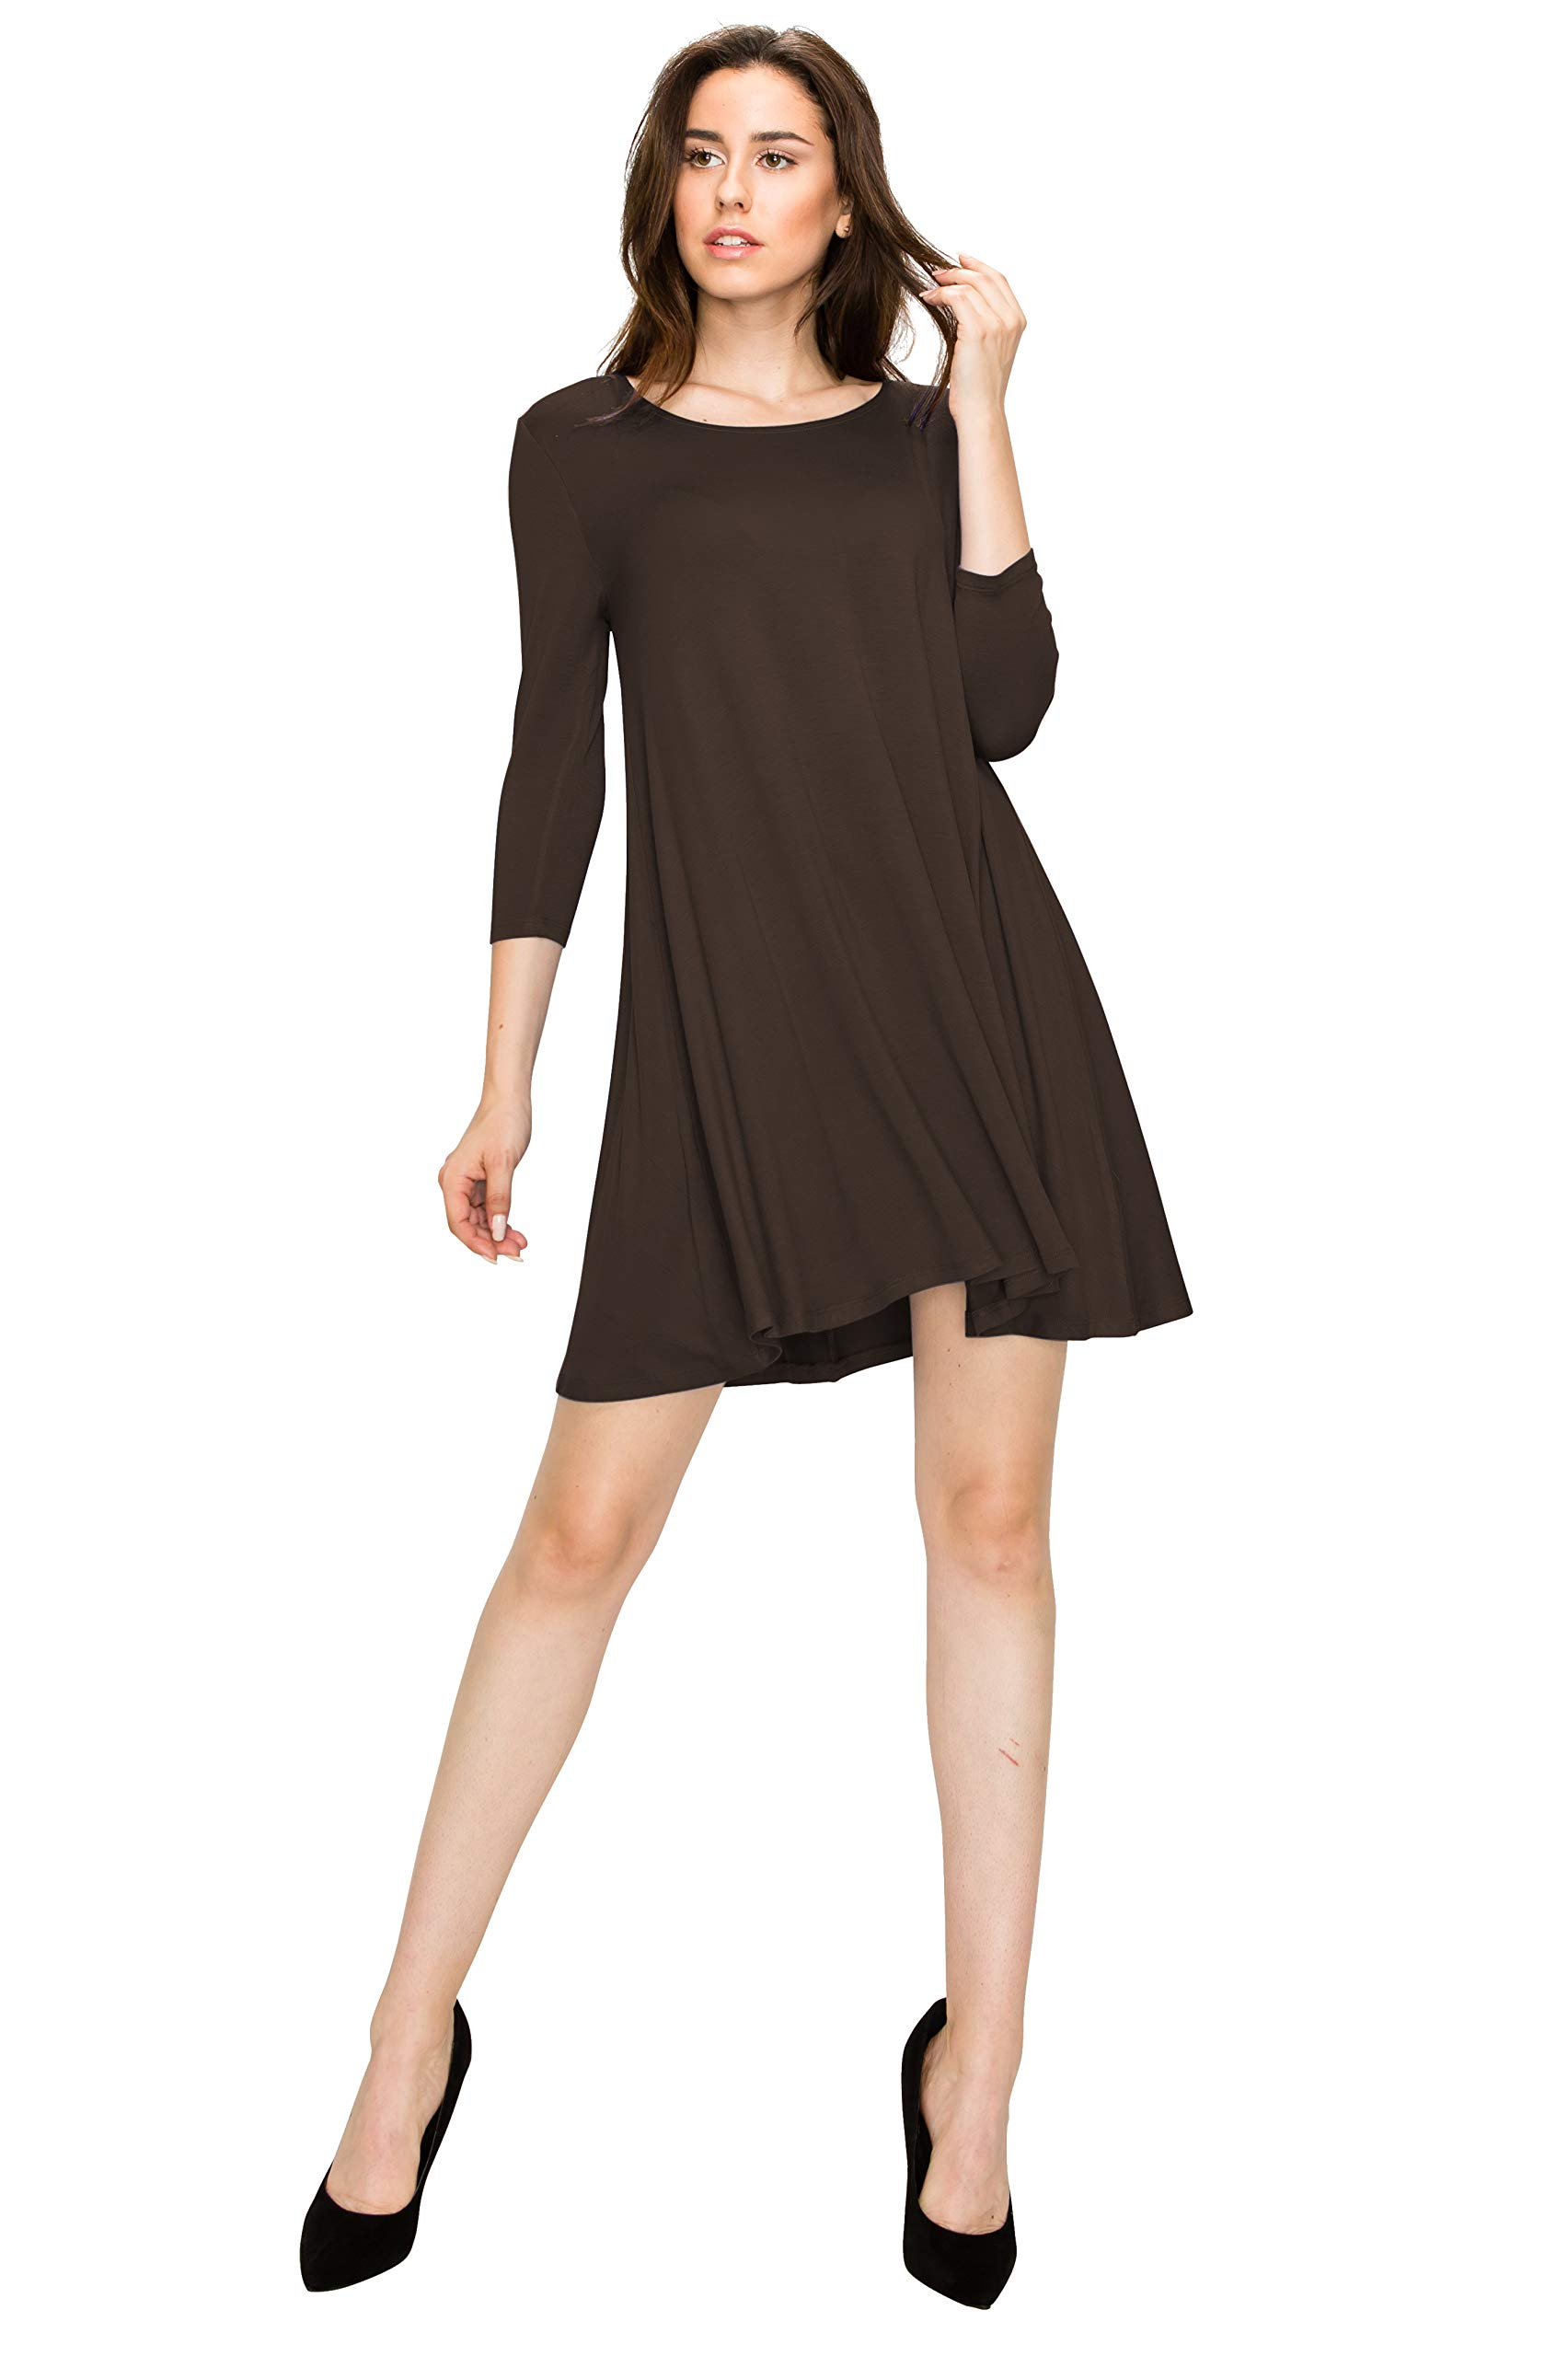 WDR930 Womens Round Neck 3/4 Sleeves Trapeze Dress With Pockets XL Brown